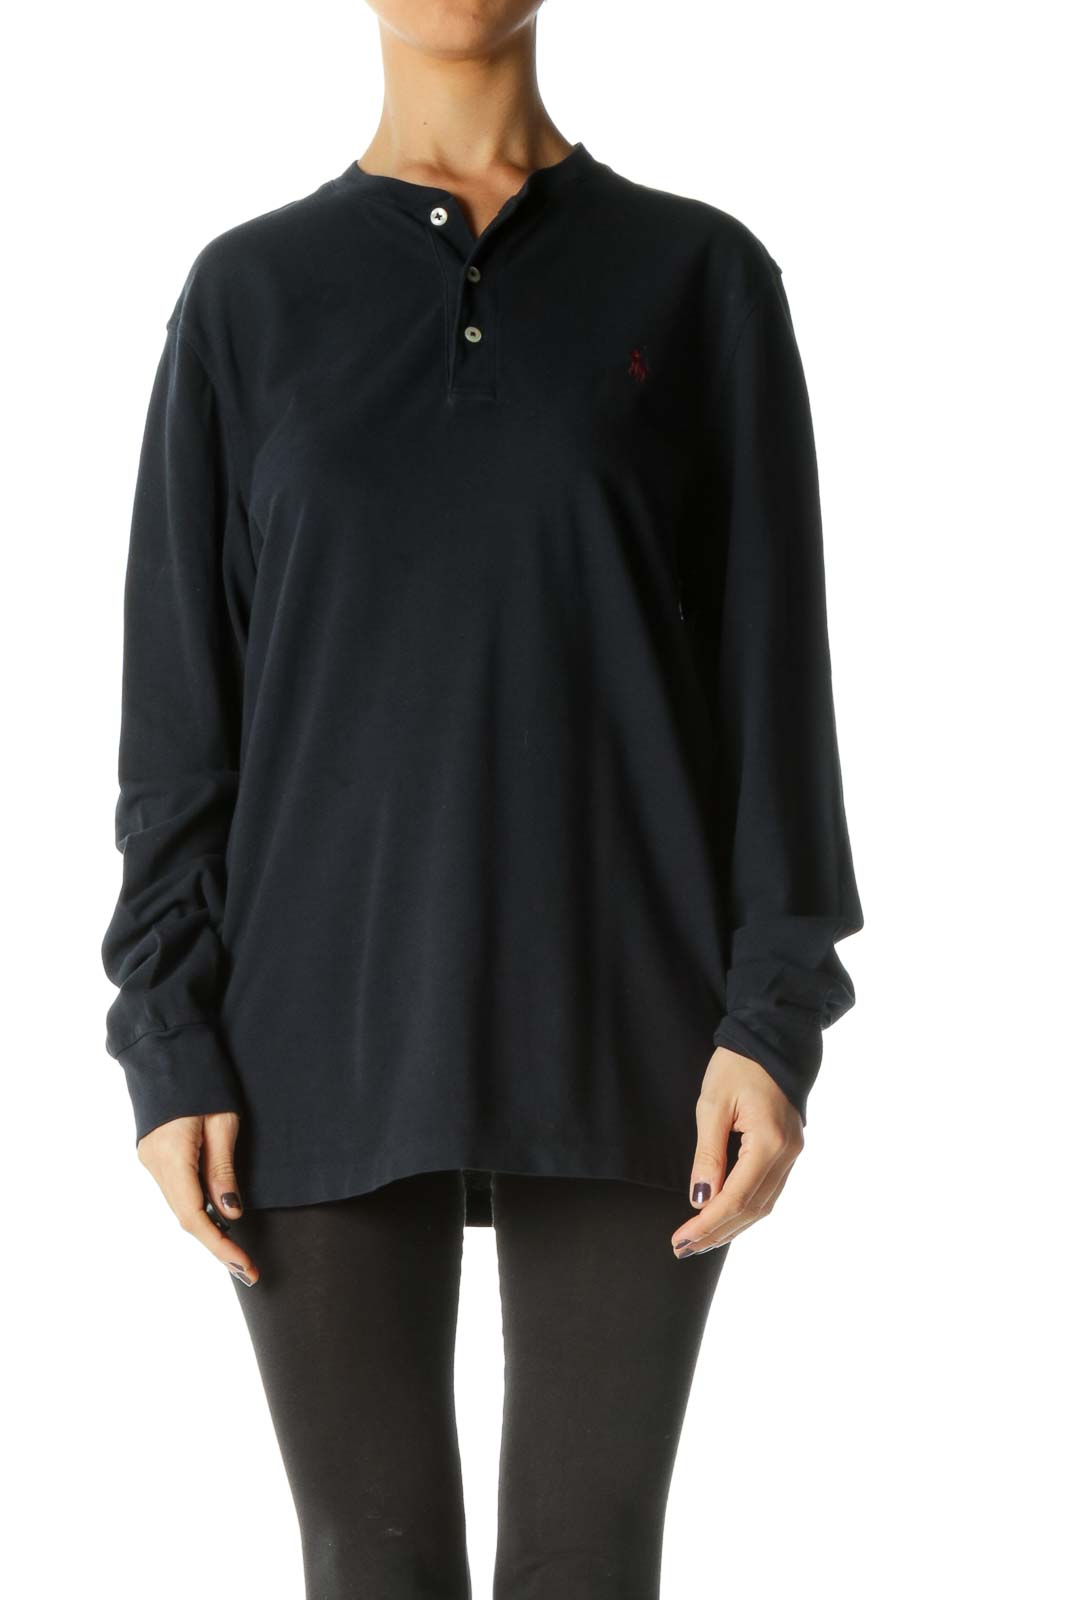 Black Solid Collared Retro Blouse Front